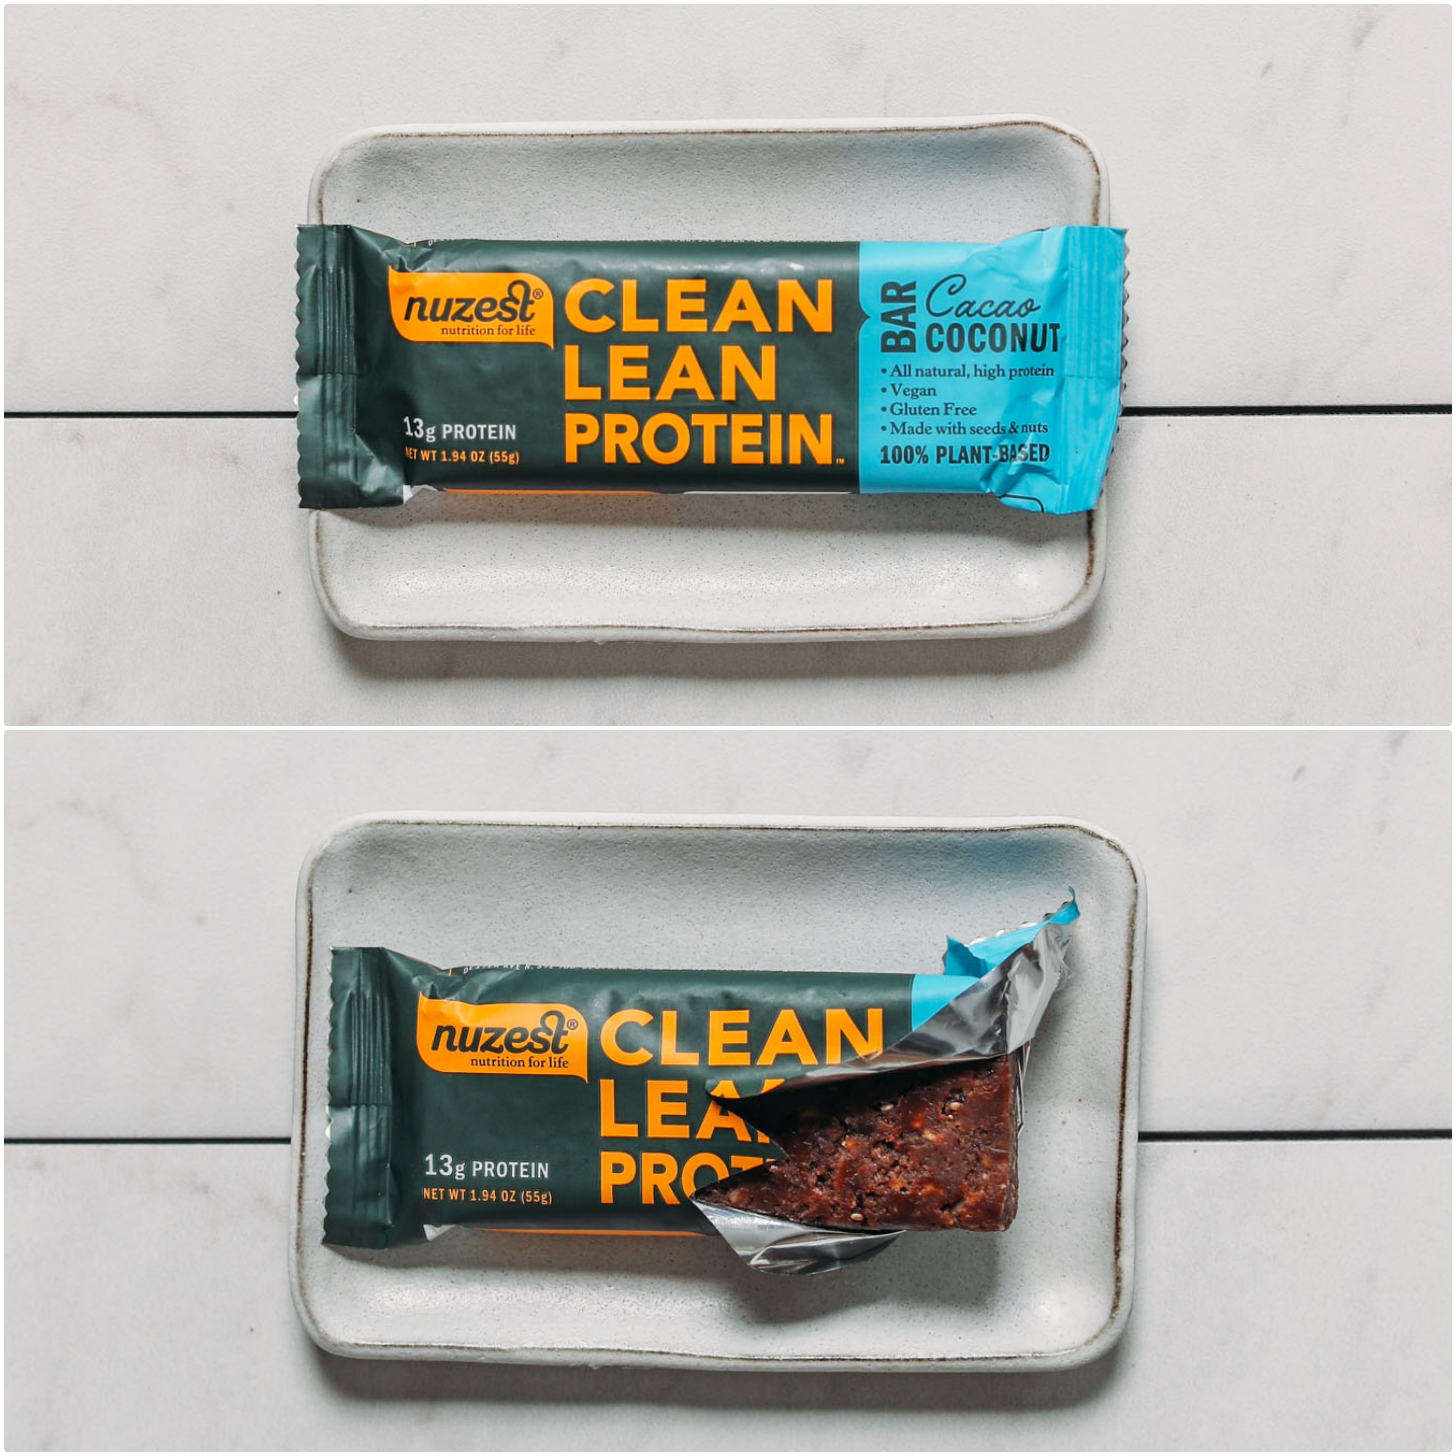 Plate with open and closed package of a Nuzest Cocoa Coconut protein bar for our unbiased review